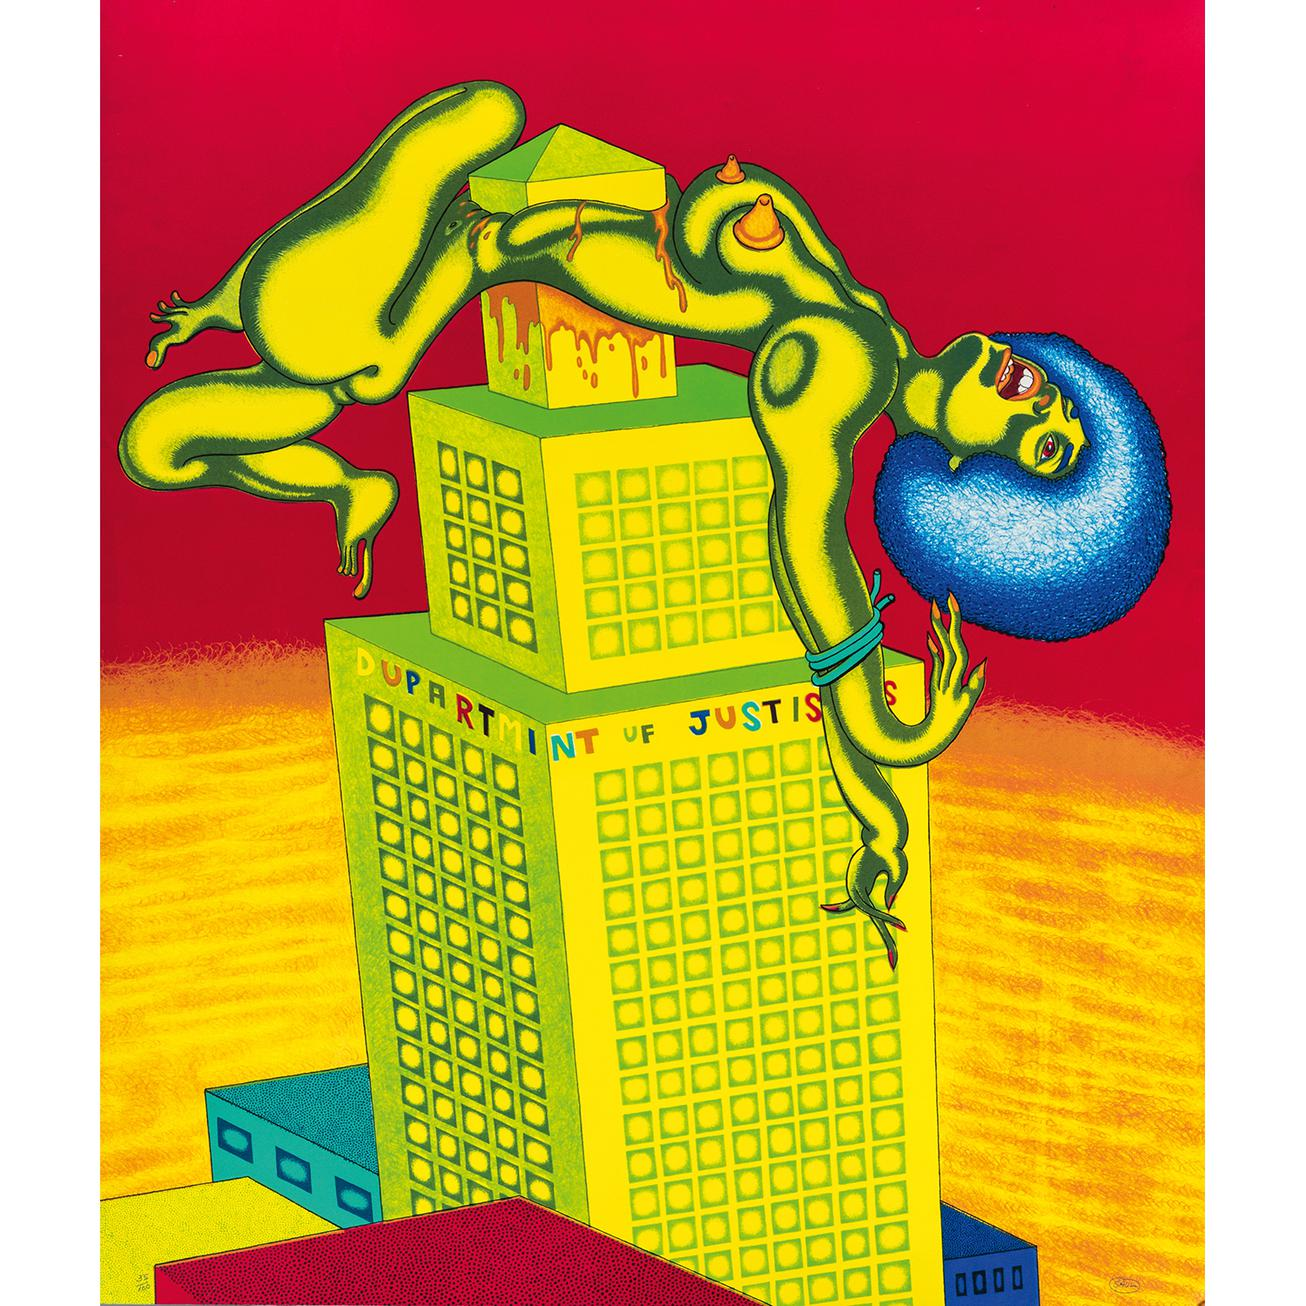 Peter Saul-Dupartmint Uf Justiss-